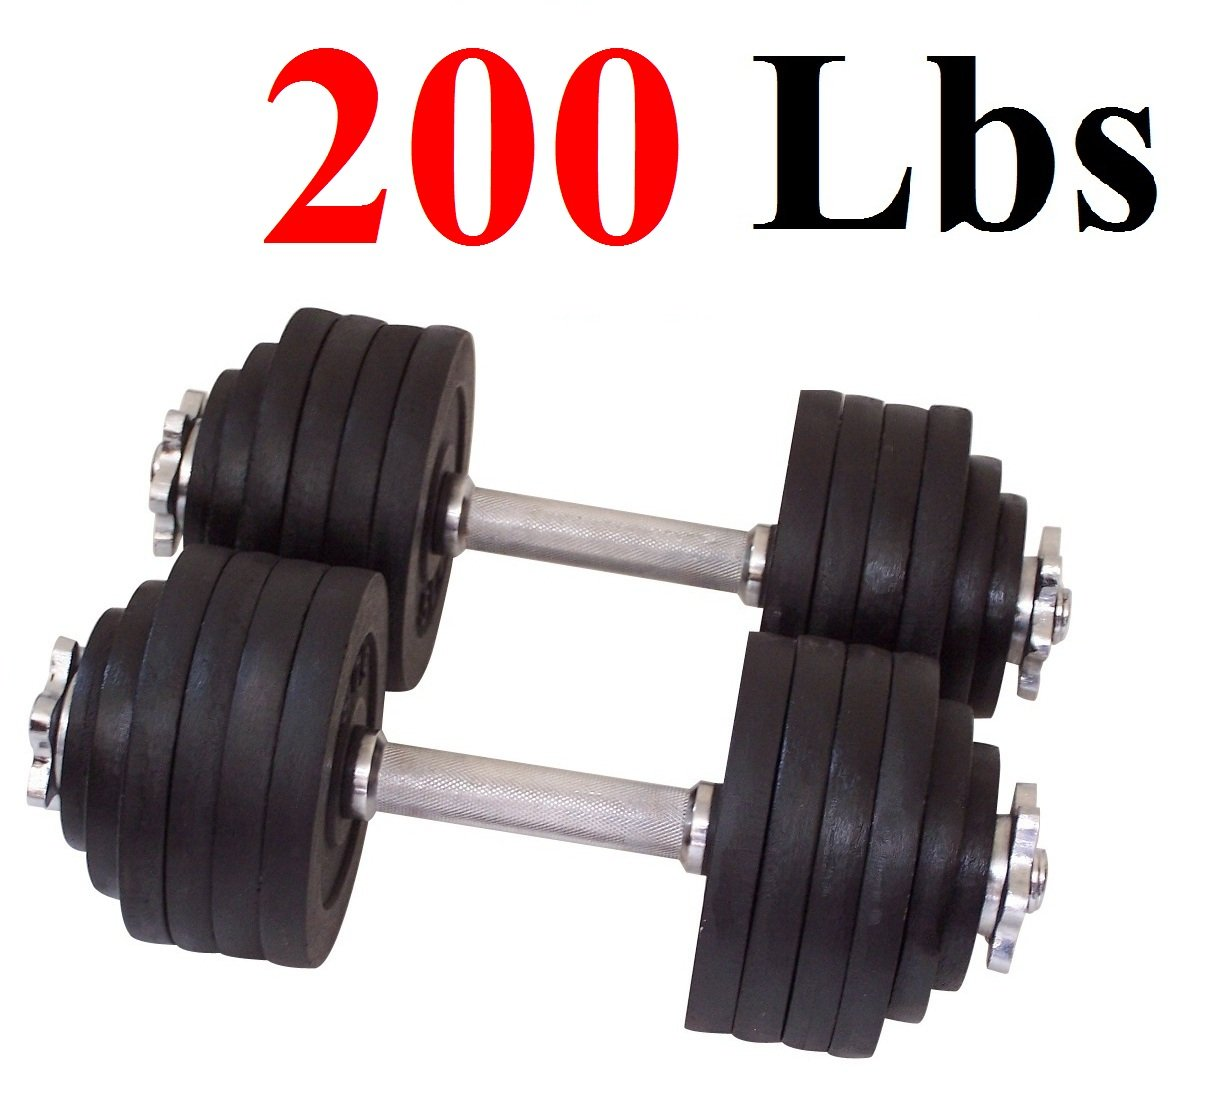 One Pair of Adjustable Dumbbells Kits - 200 Lbs (100lbs X 2pc) by Unipack